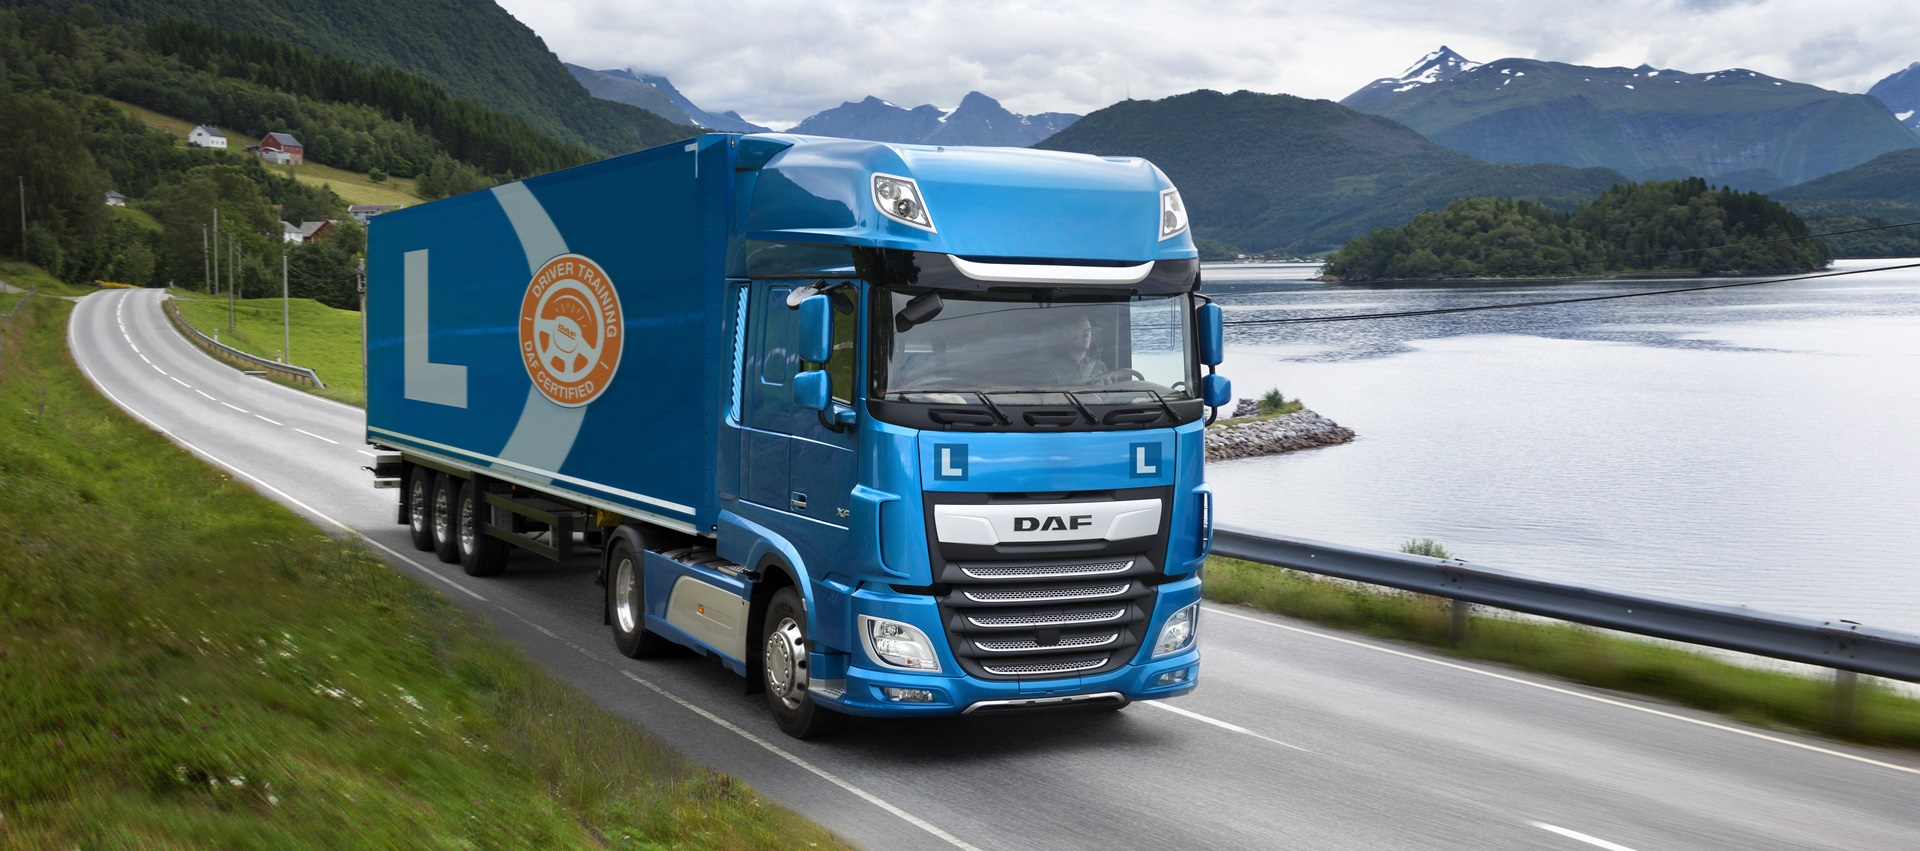 DAF-chauffeurs-training-Les-truck-auto